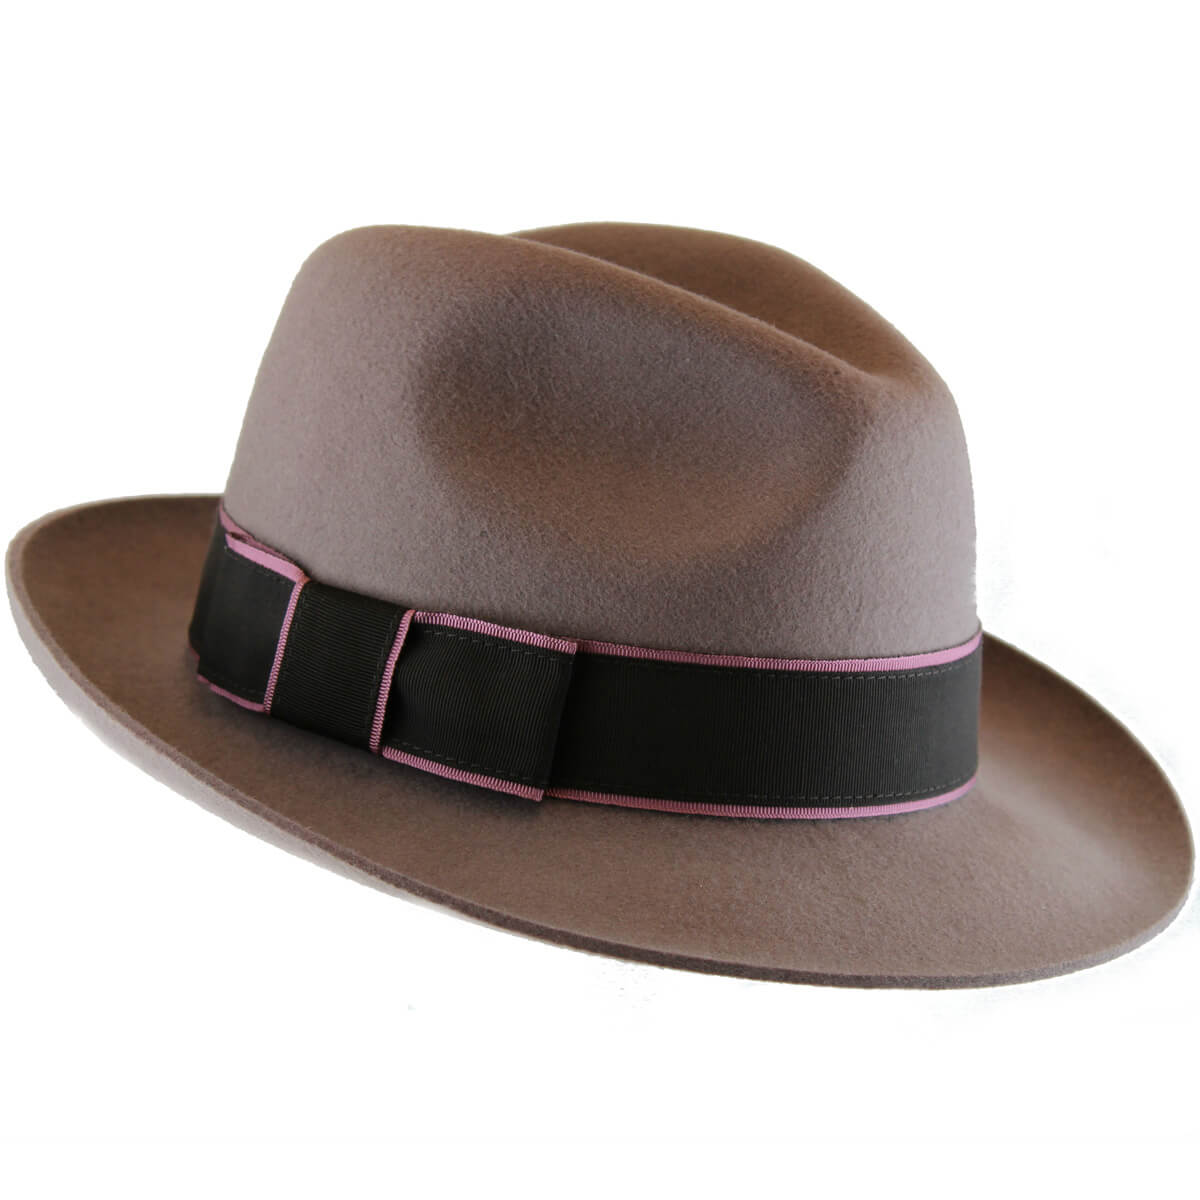 From The Christys' Classic Ladies collection, we are proud to showcase the Rosie Trilby. A versatile